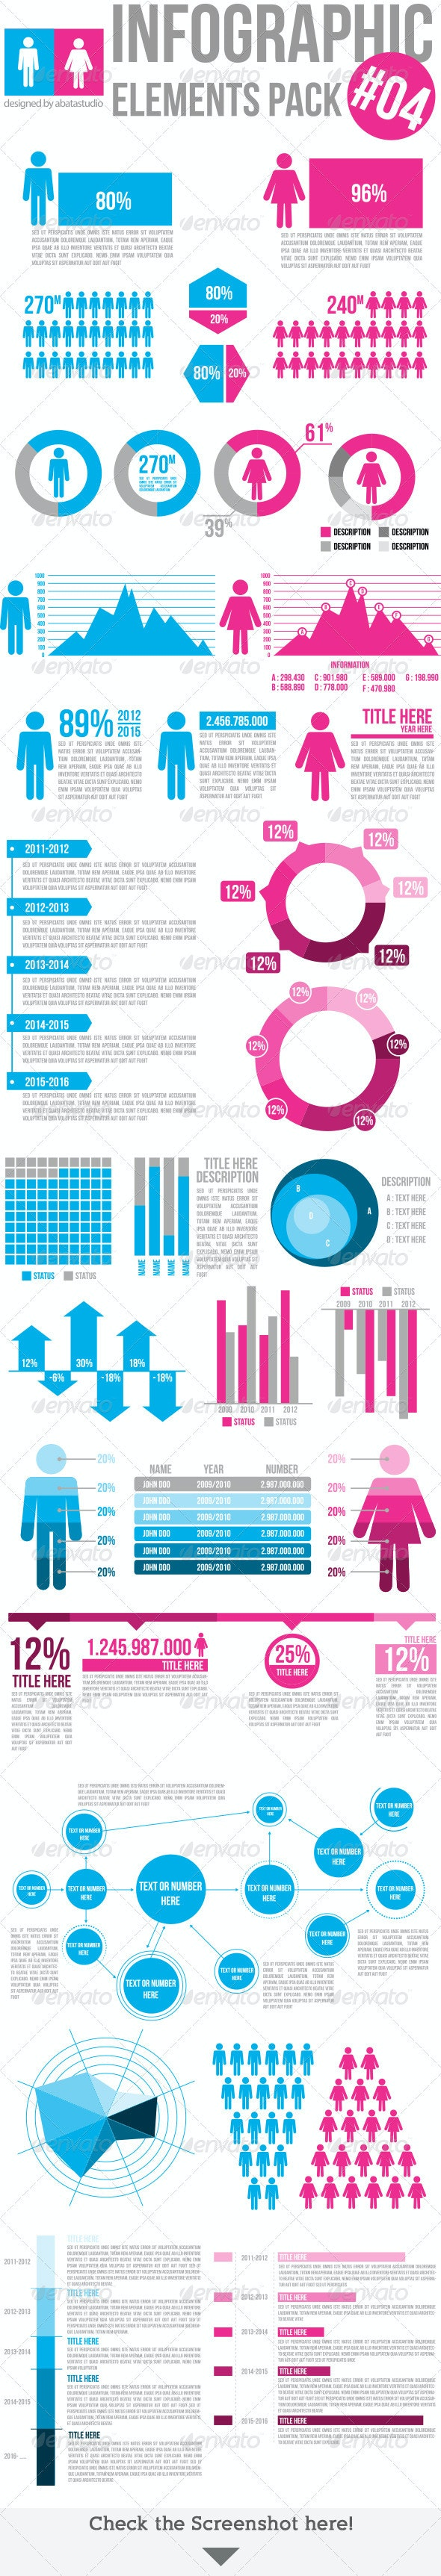 Infographic Elements Pack 04 - Infographics